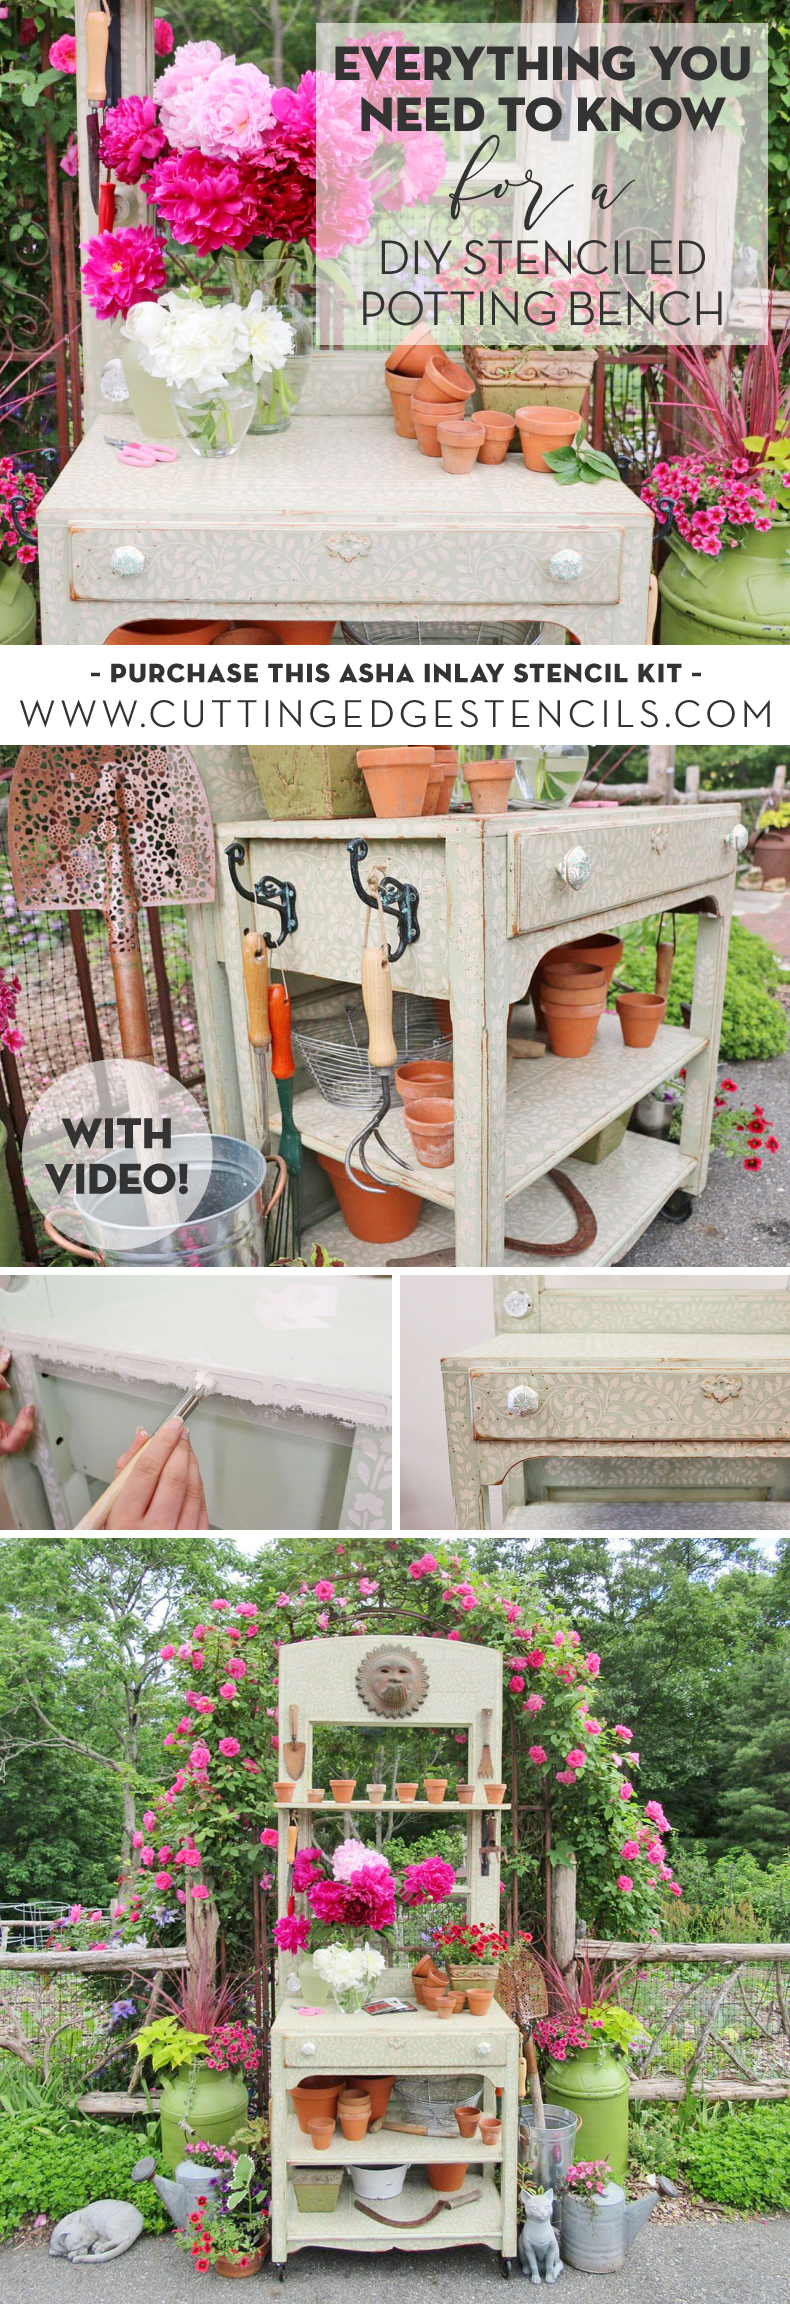 potting bench tutorial